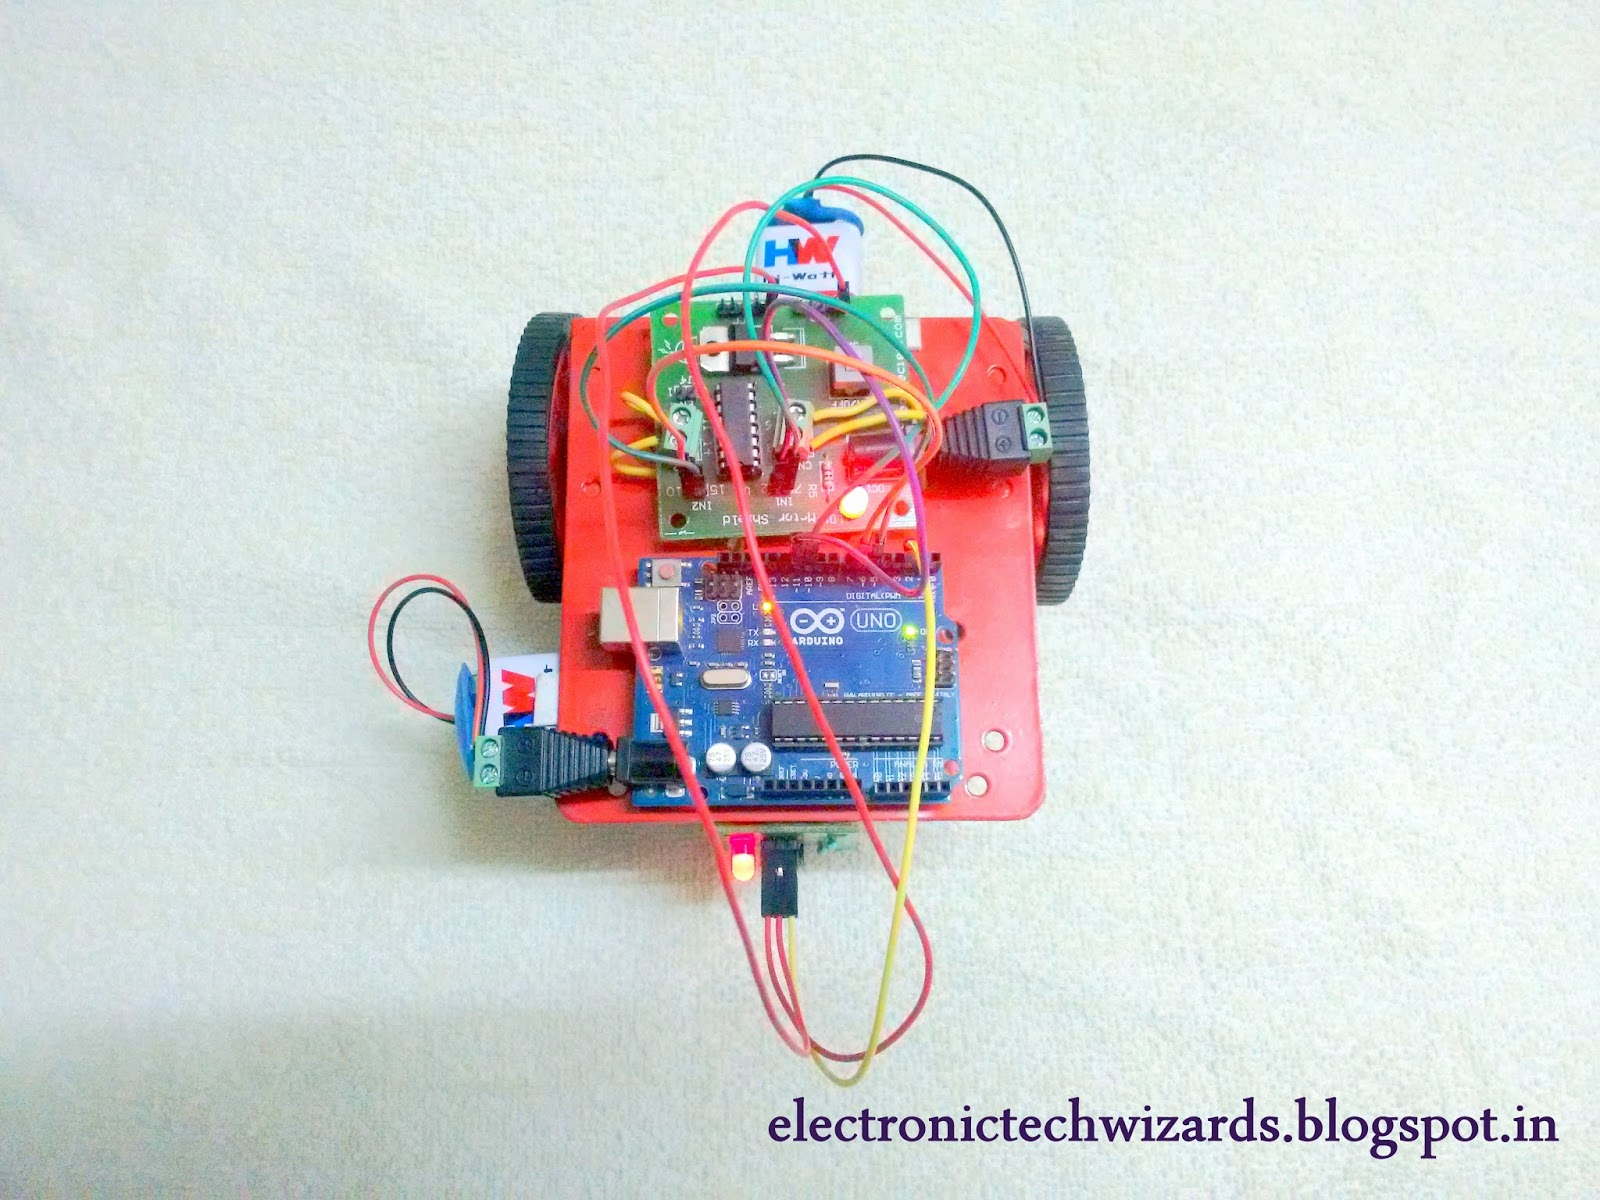 Electronictechwizards 2016 Line Following Robot Without Microcontroller Simple Follower